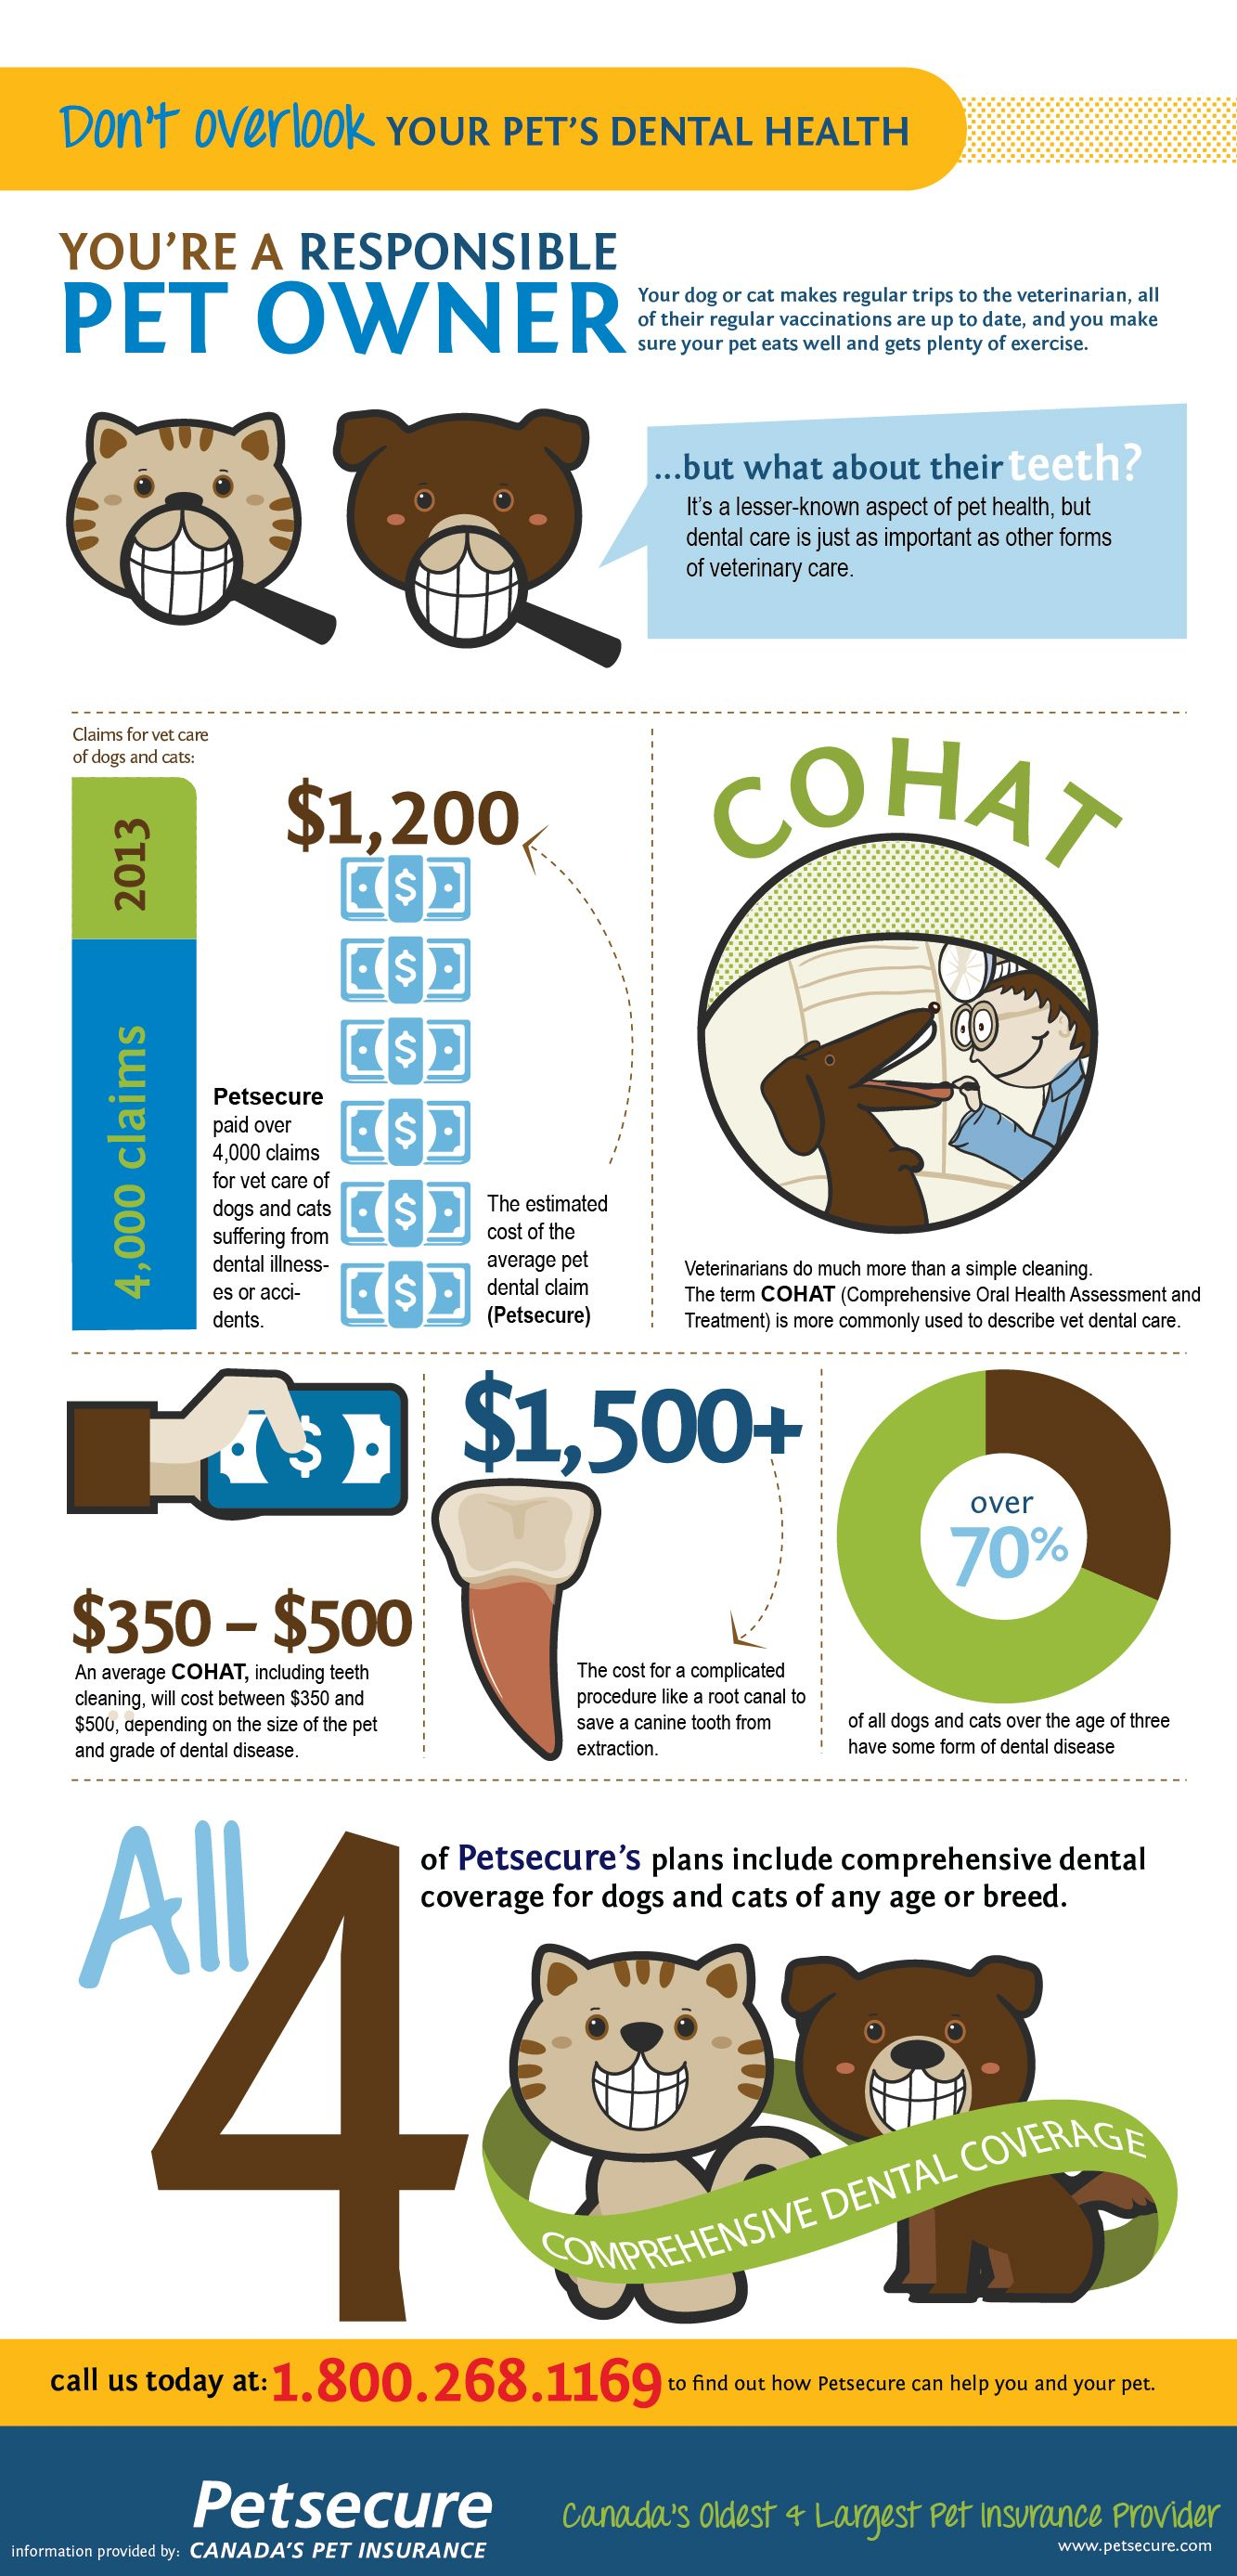 February Is Pet Dental Health Month Take A Look At This Handy Infographic To